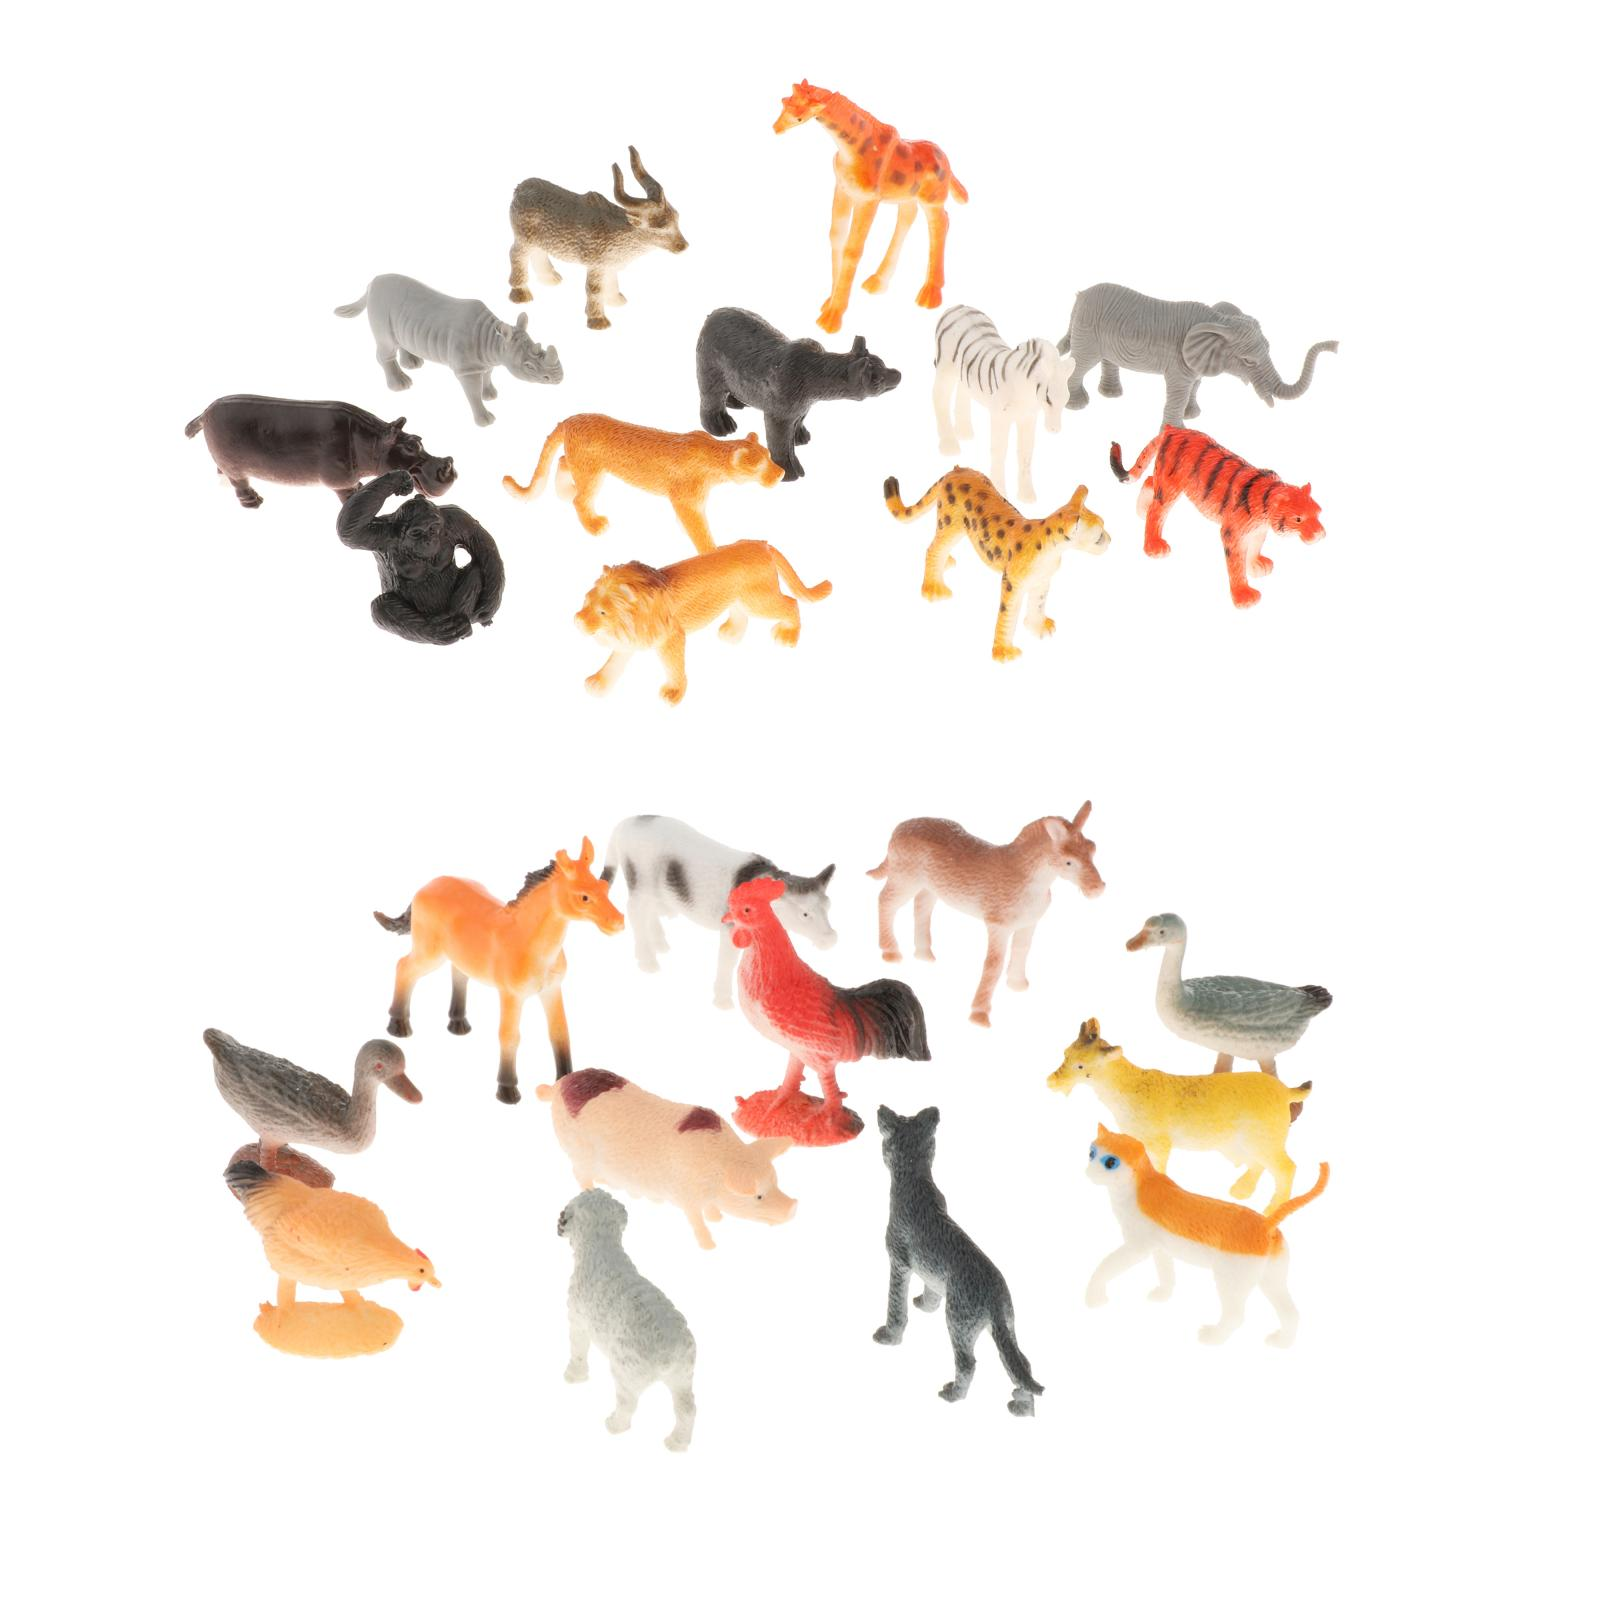 Montessori Matching Game Cards and Animal Figurines Toy for Toddlers Preschool Practical Life Material